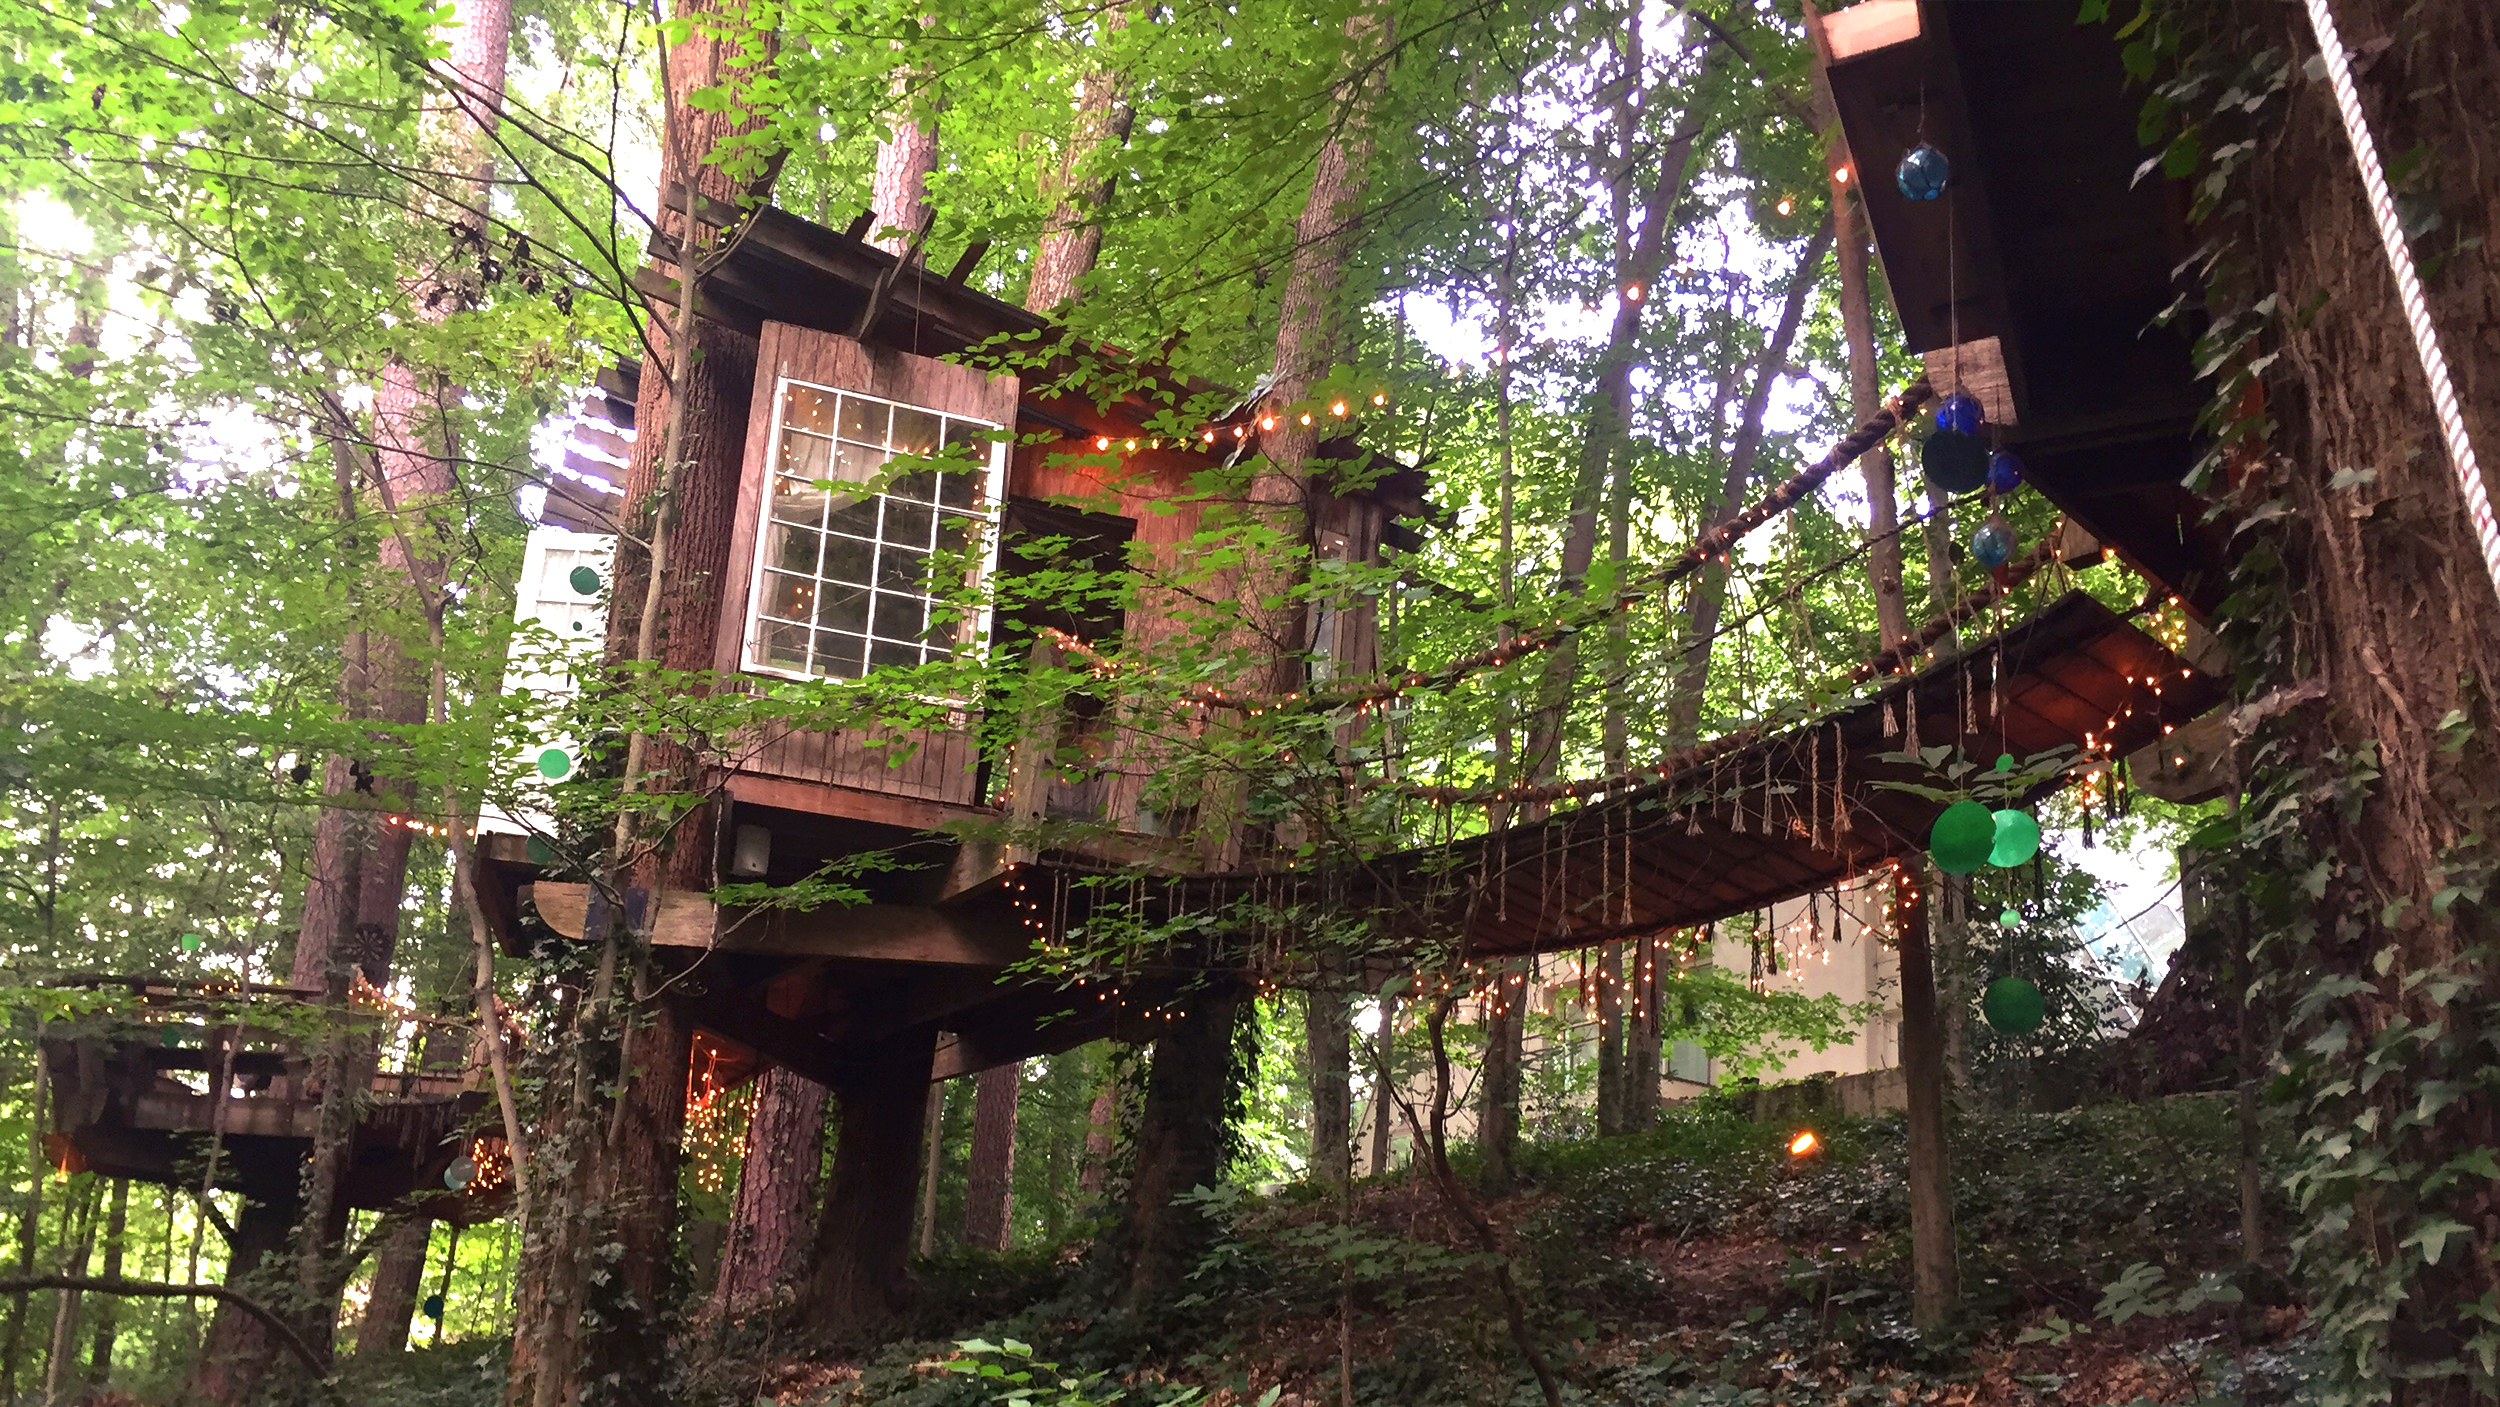 Treehouse Pictures This Airbnb Treehouse Is The Most Wished For Listing Todaycom